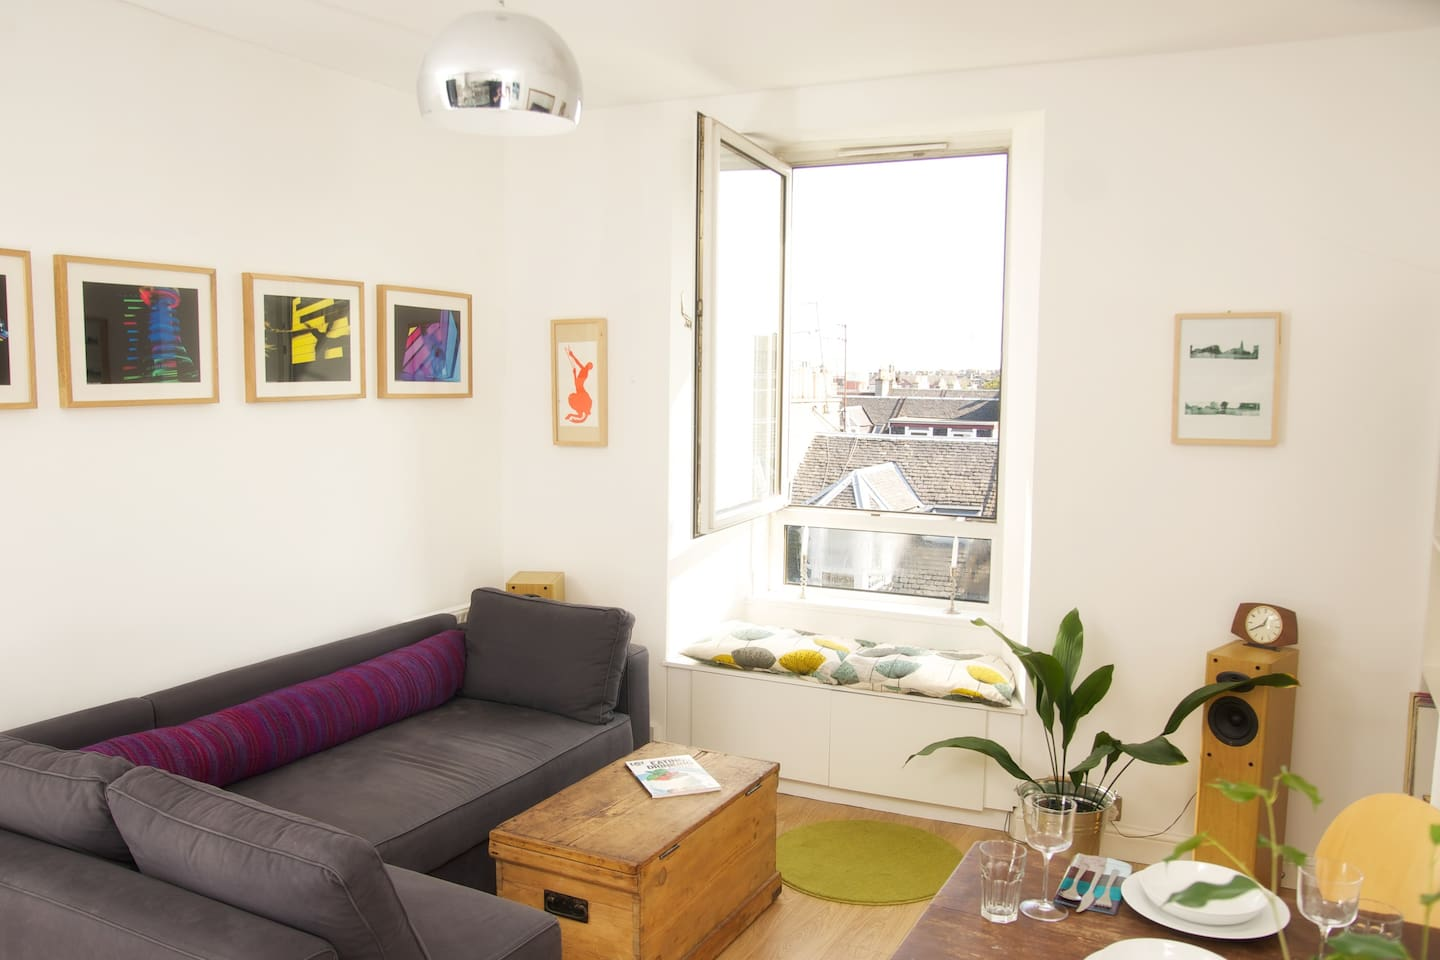 Big comfy sofa and sunny window seat to enjoy the panoramic view